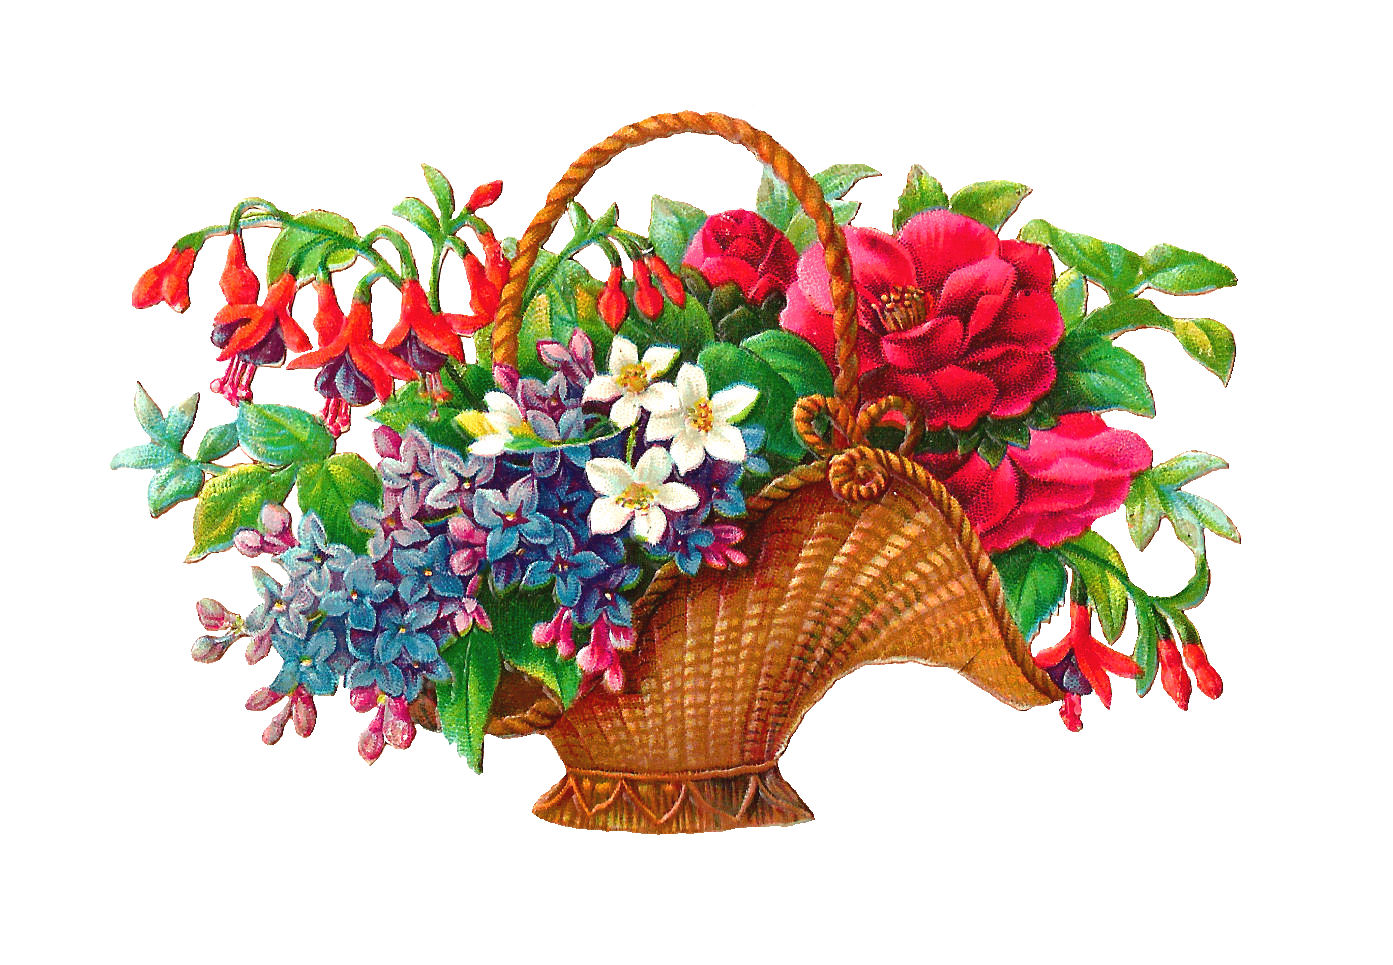 Antique Images: Free Flower Basket Clip Art: 2 Wicket ...